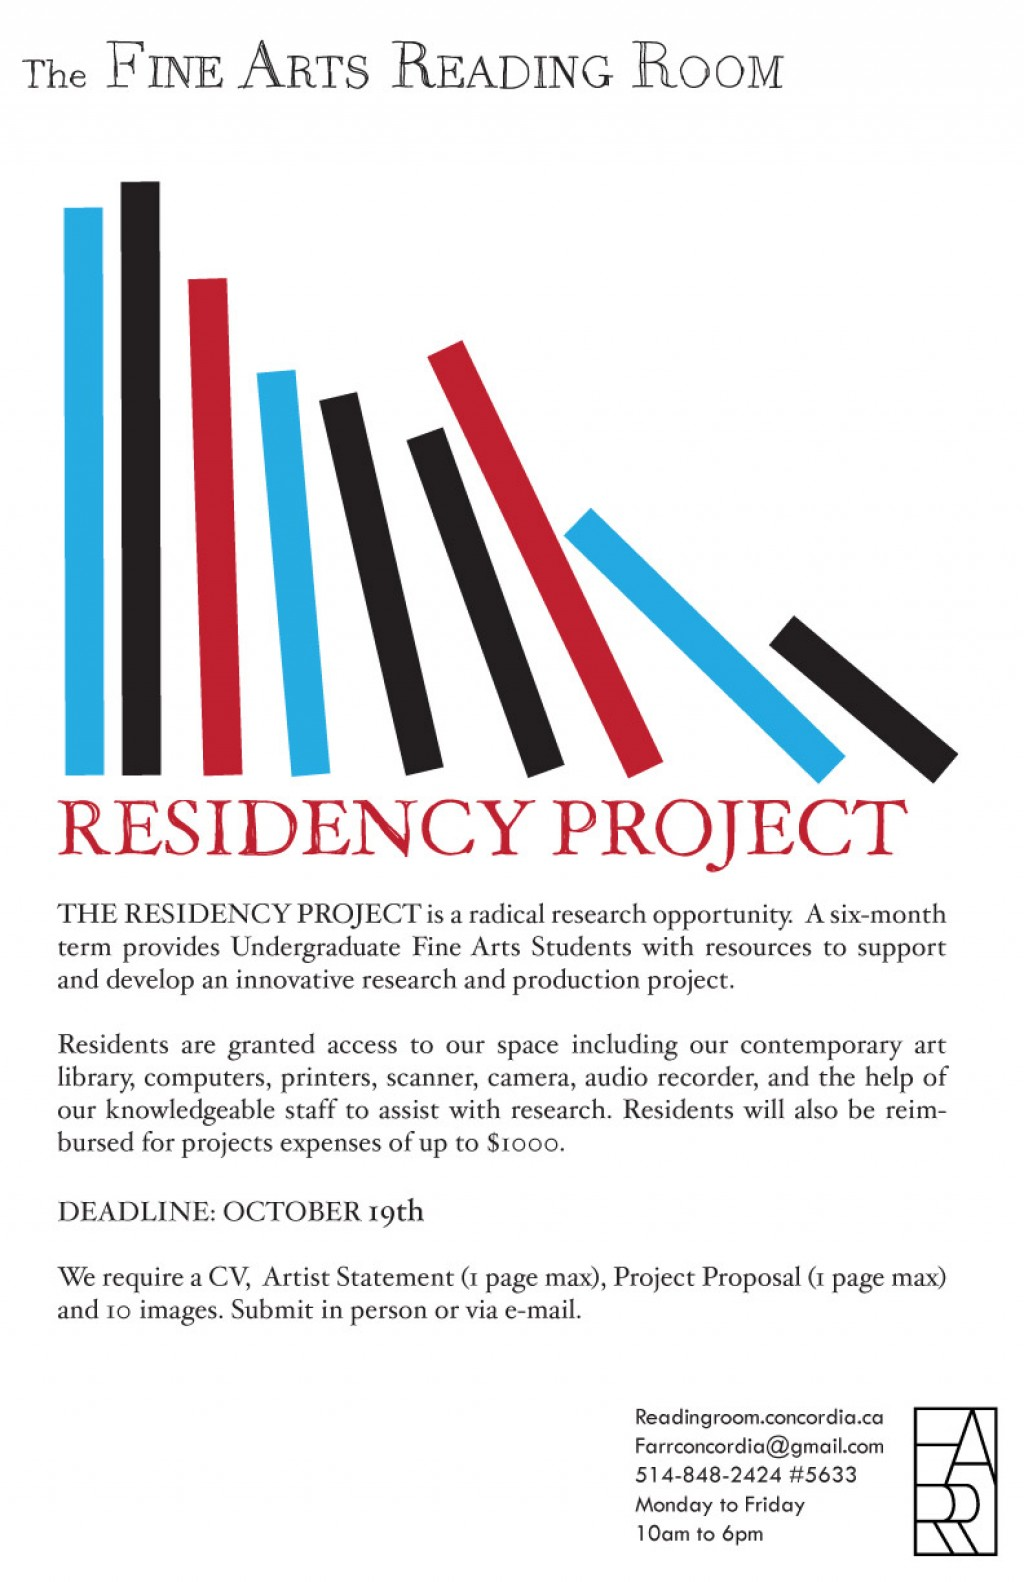 016 Farr Residency Poster Essay Example Fsu Remarkable Application Admission Examples Large